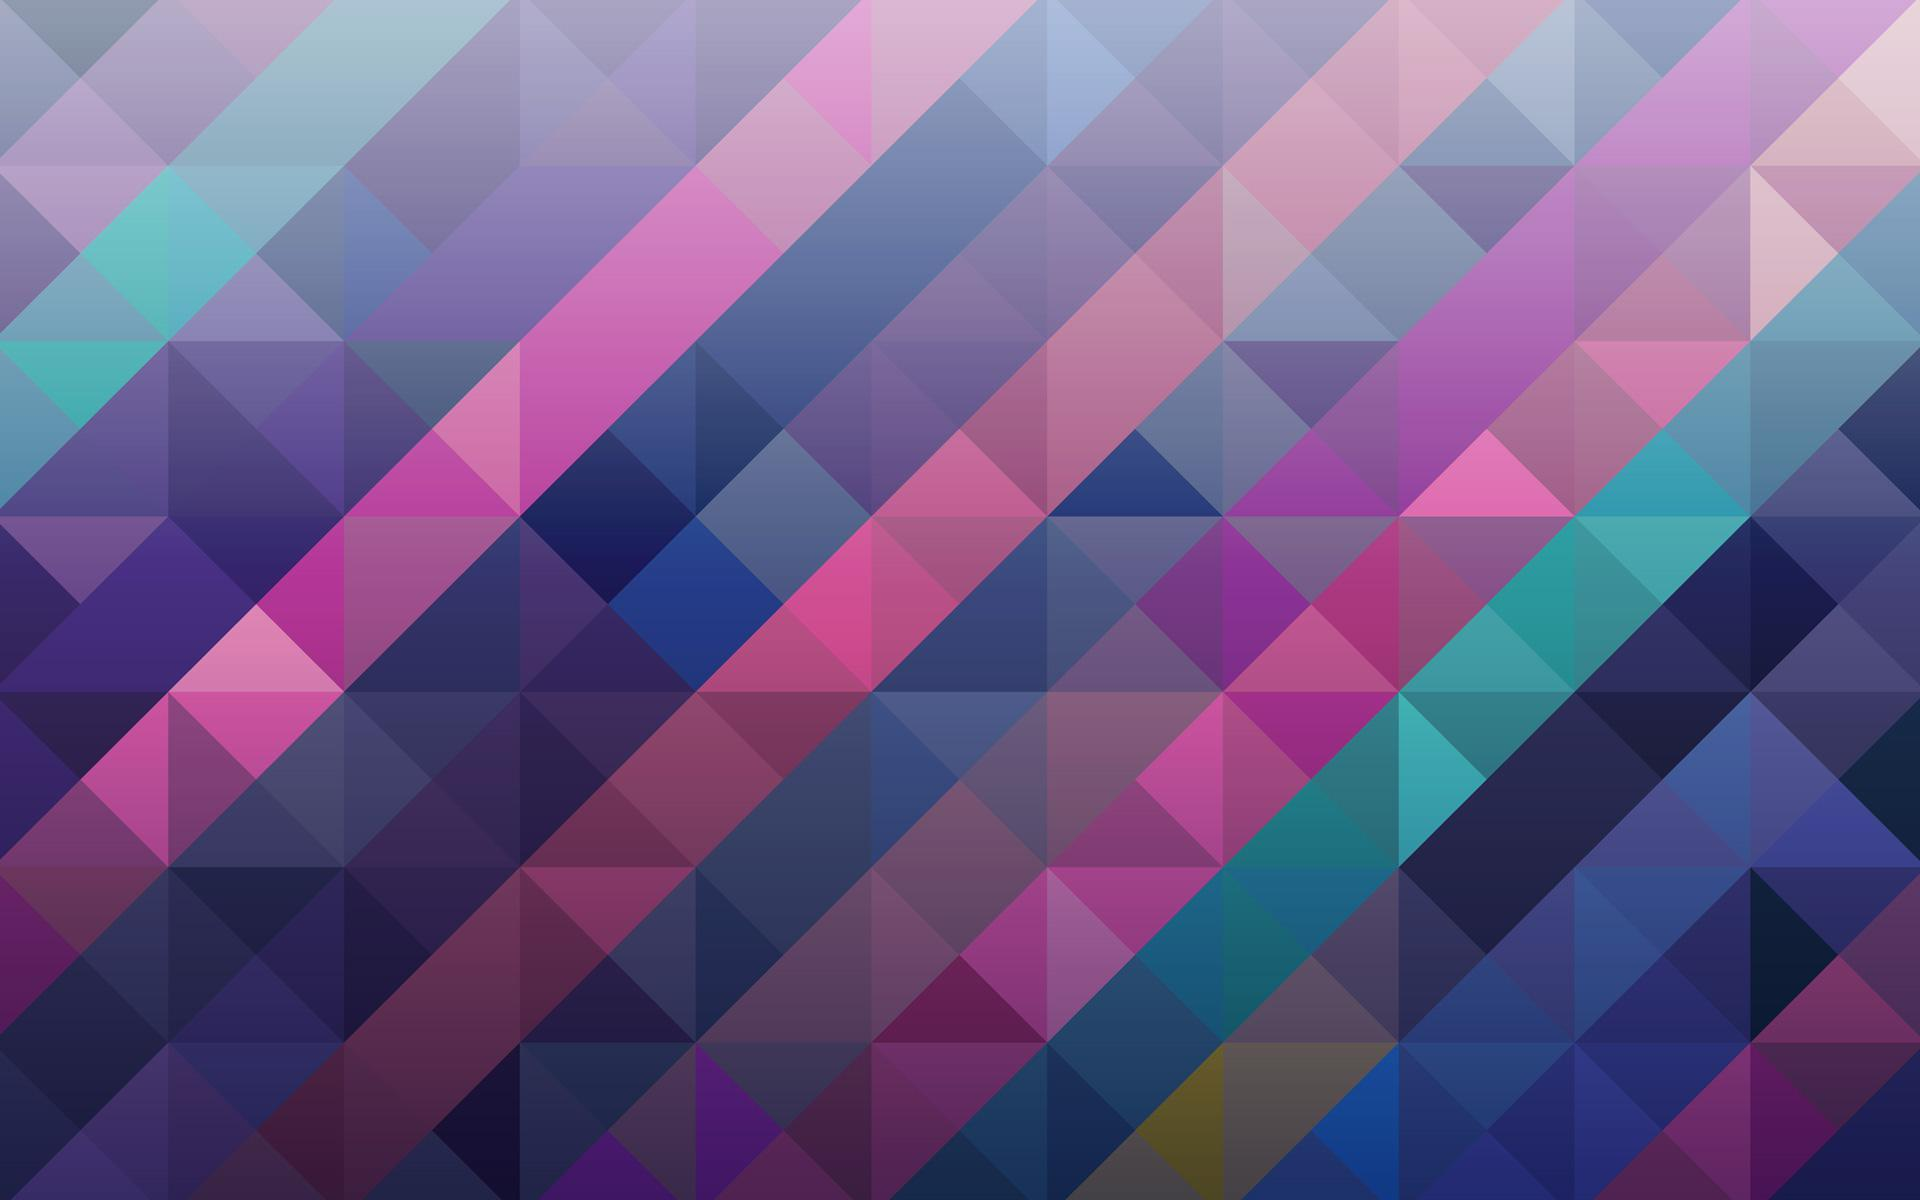 Abstract Background   HD Wallpapers Backgrounds of Your Choice 1920x1200